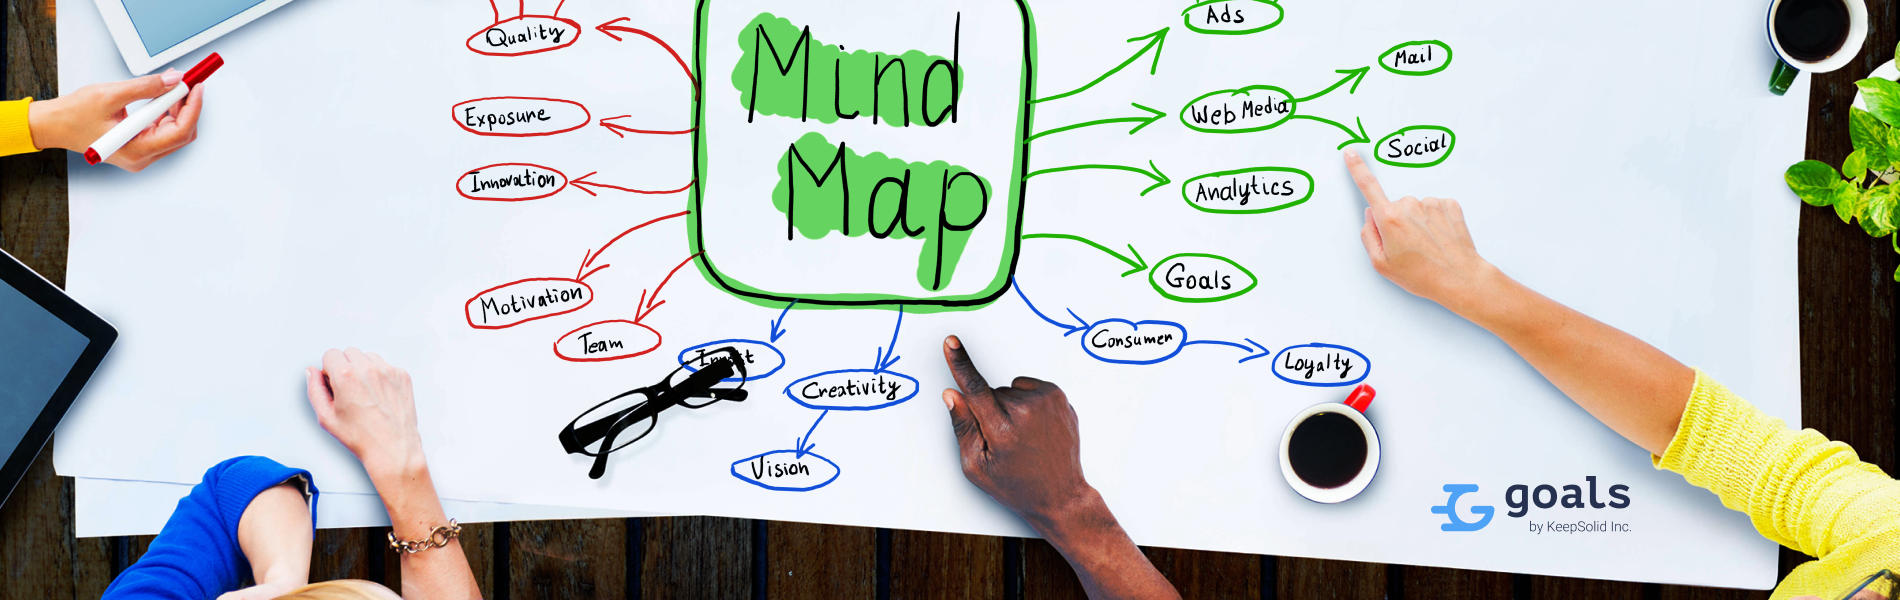 Business team planning project using mind maps